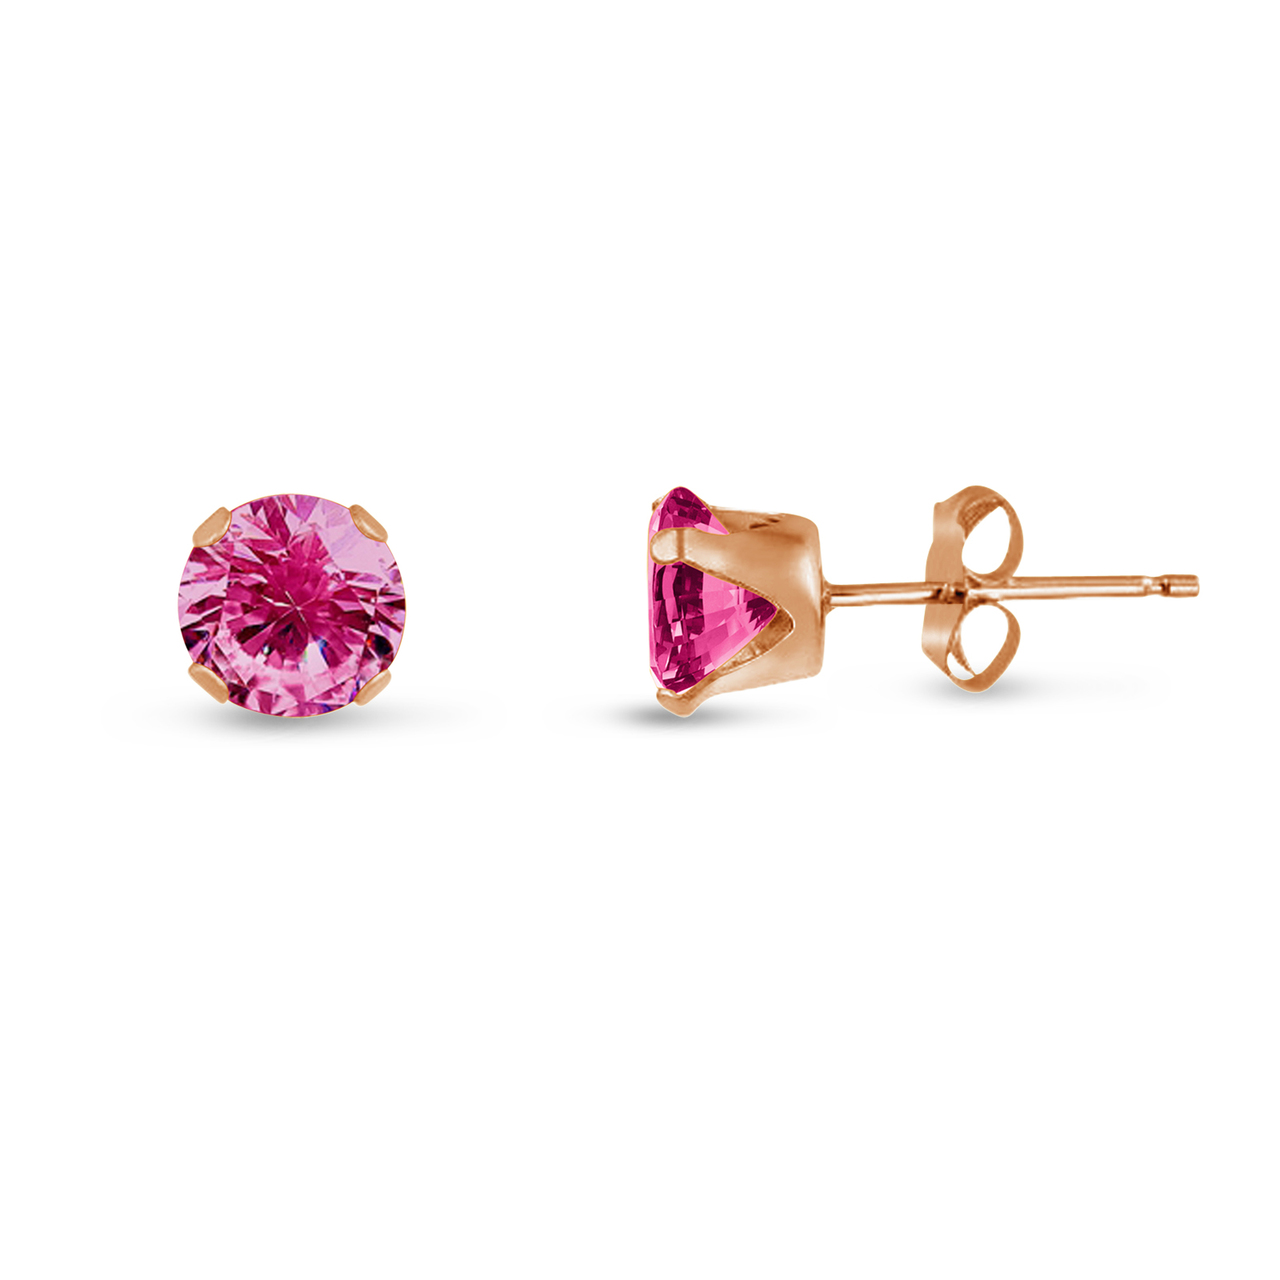 ddae75bc8f1a5 Created Pink Sapphire Round Stud Earrings in Rose Gold over Silver